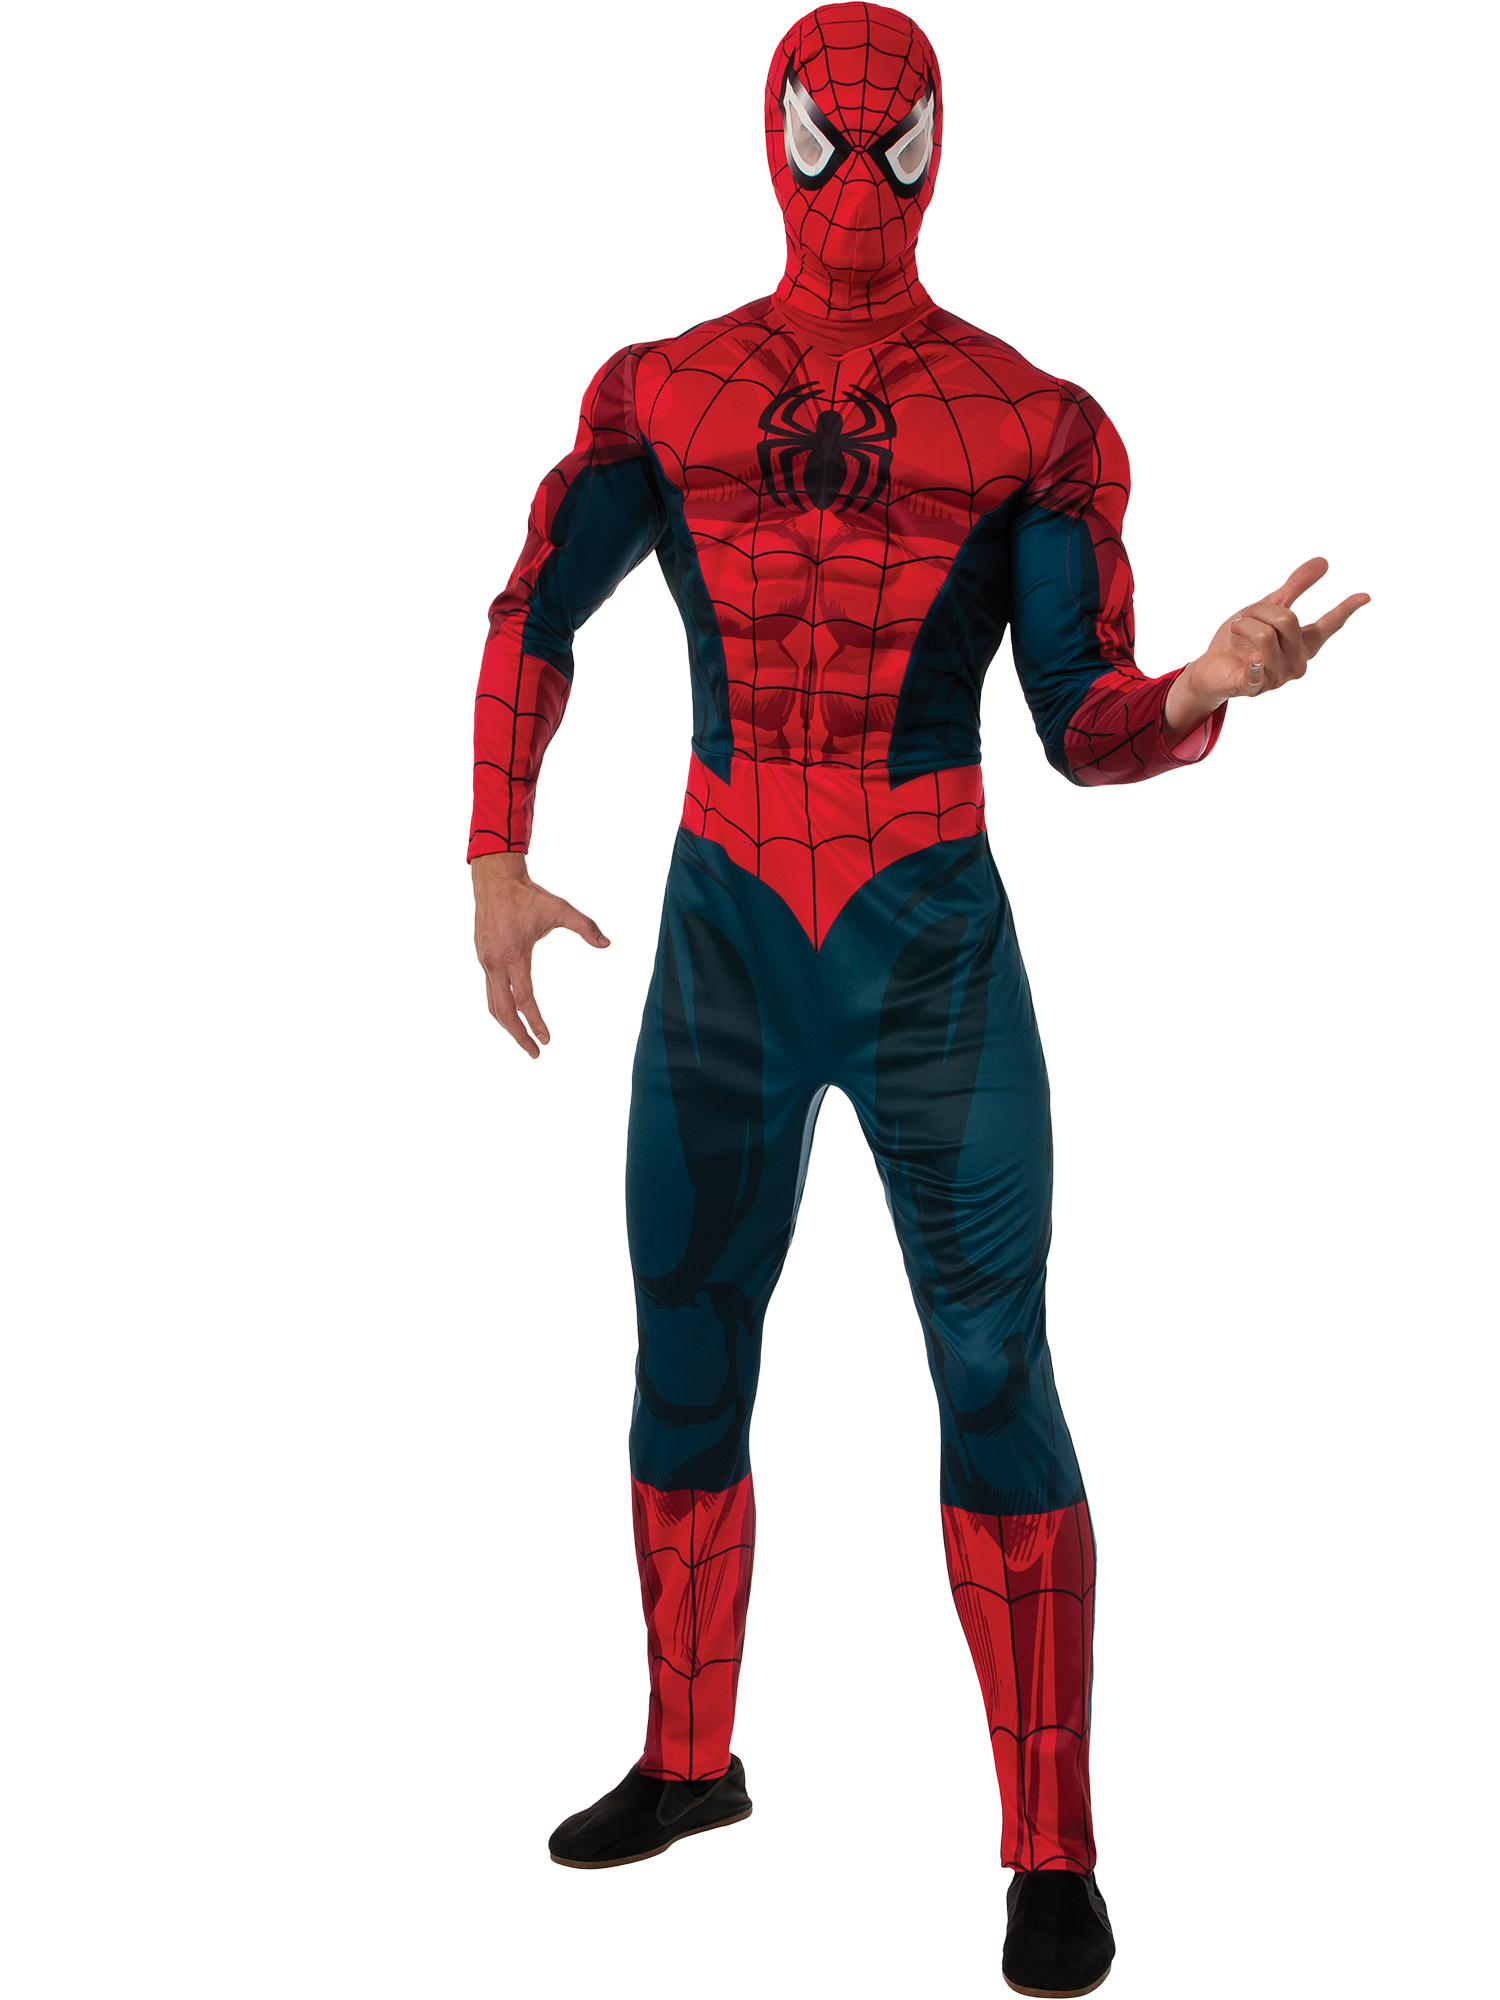 Spiderman Costume For Men R880606-XL